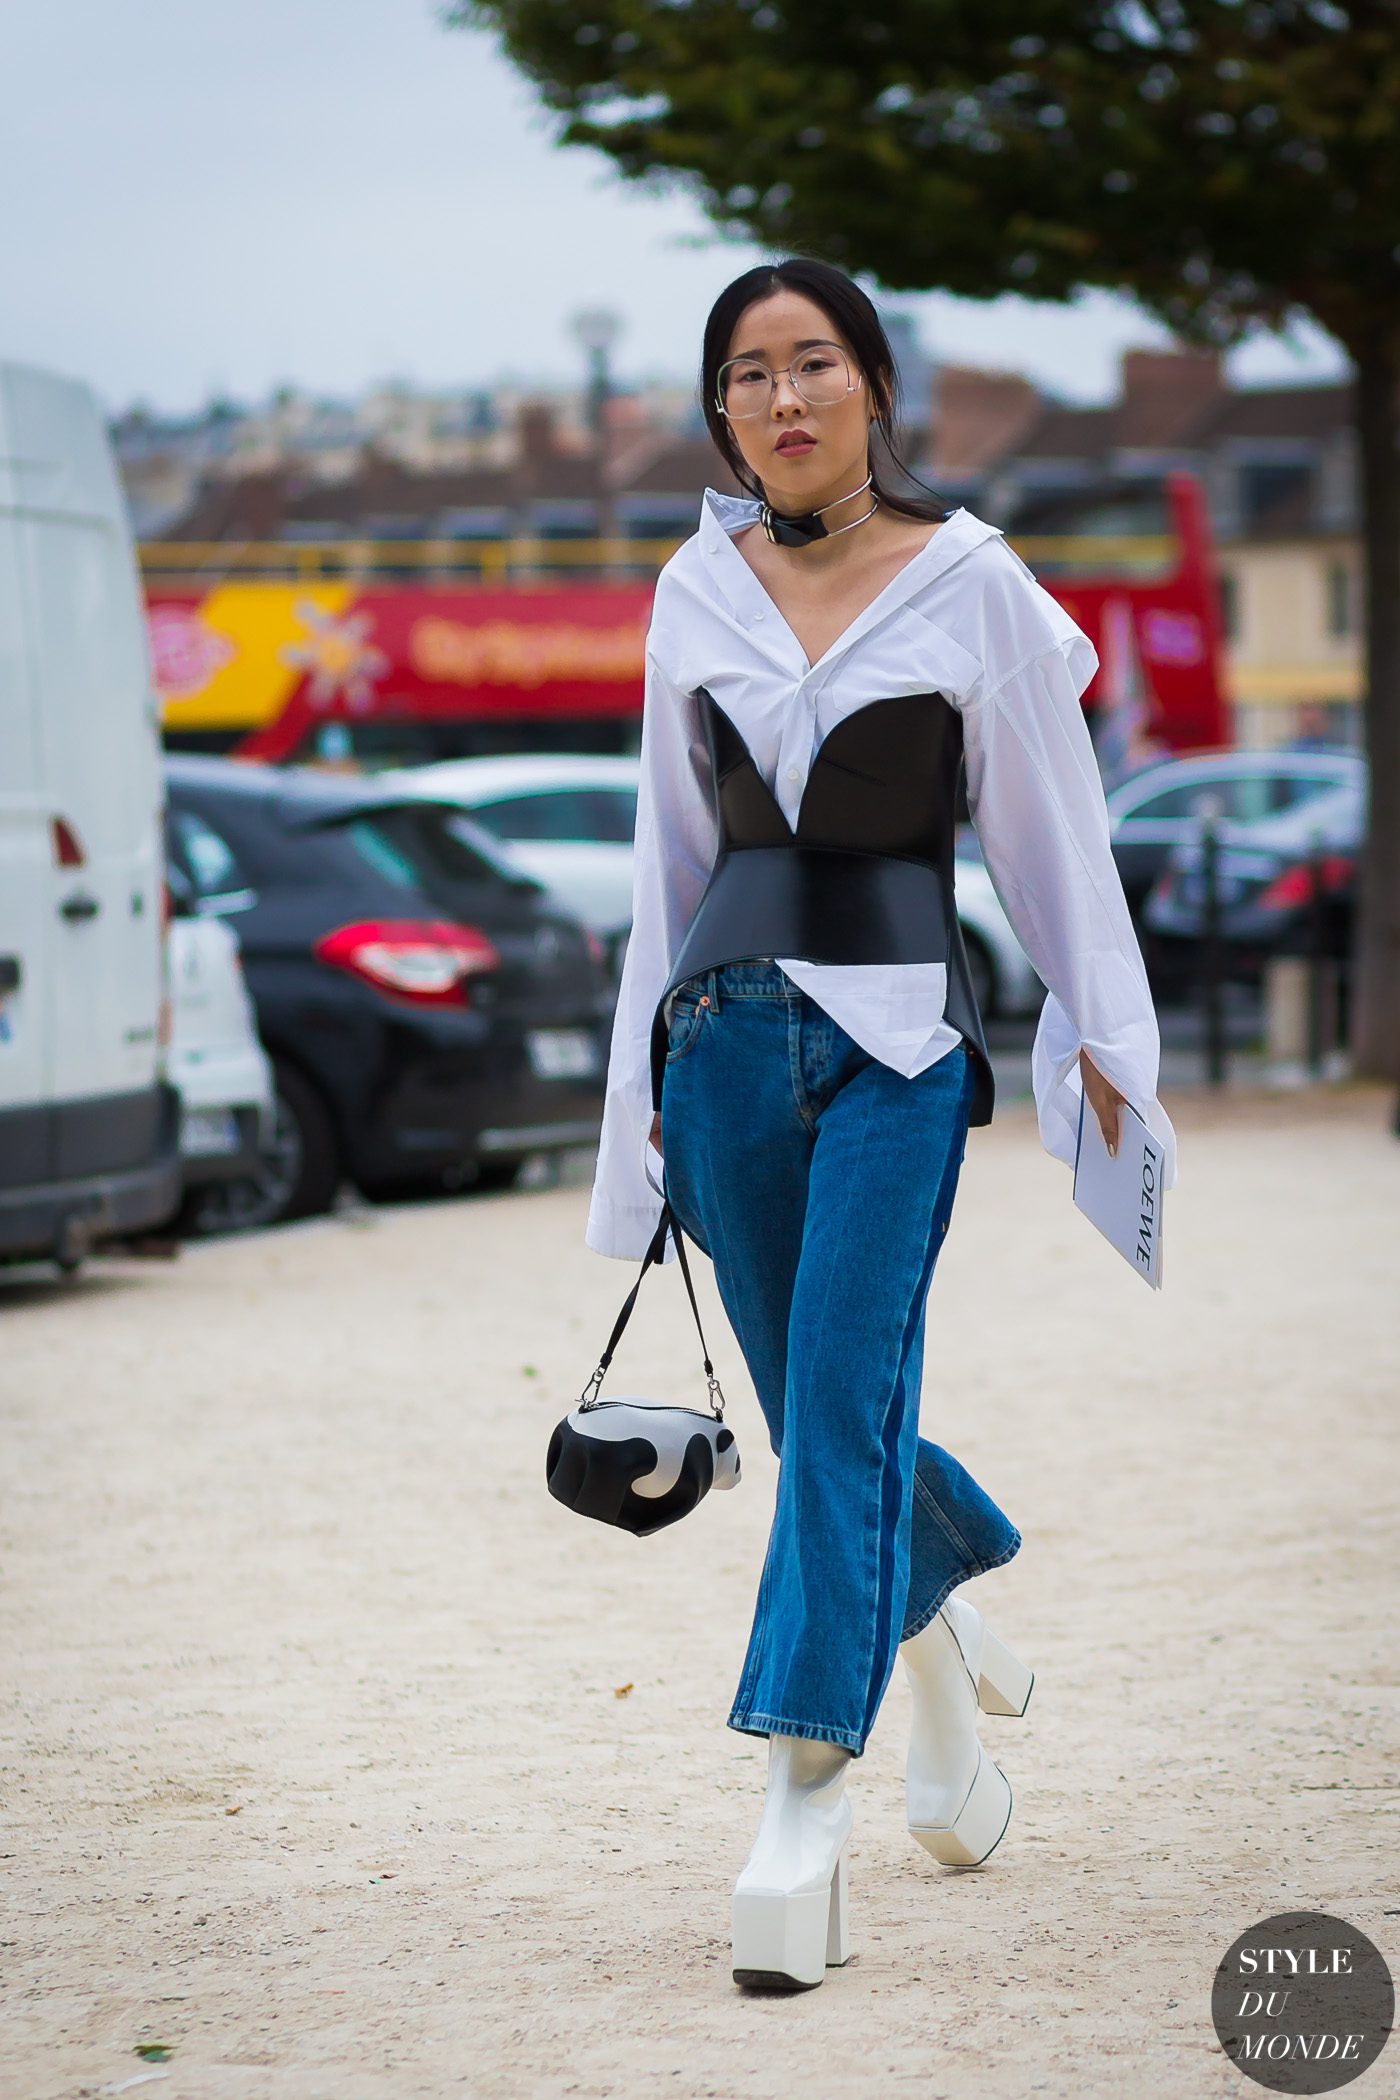 pfw-ss17-by-styledumonde-street-style-fashion-photography